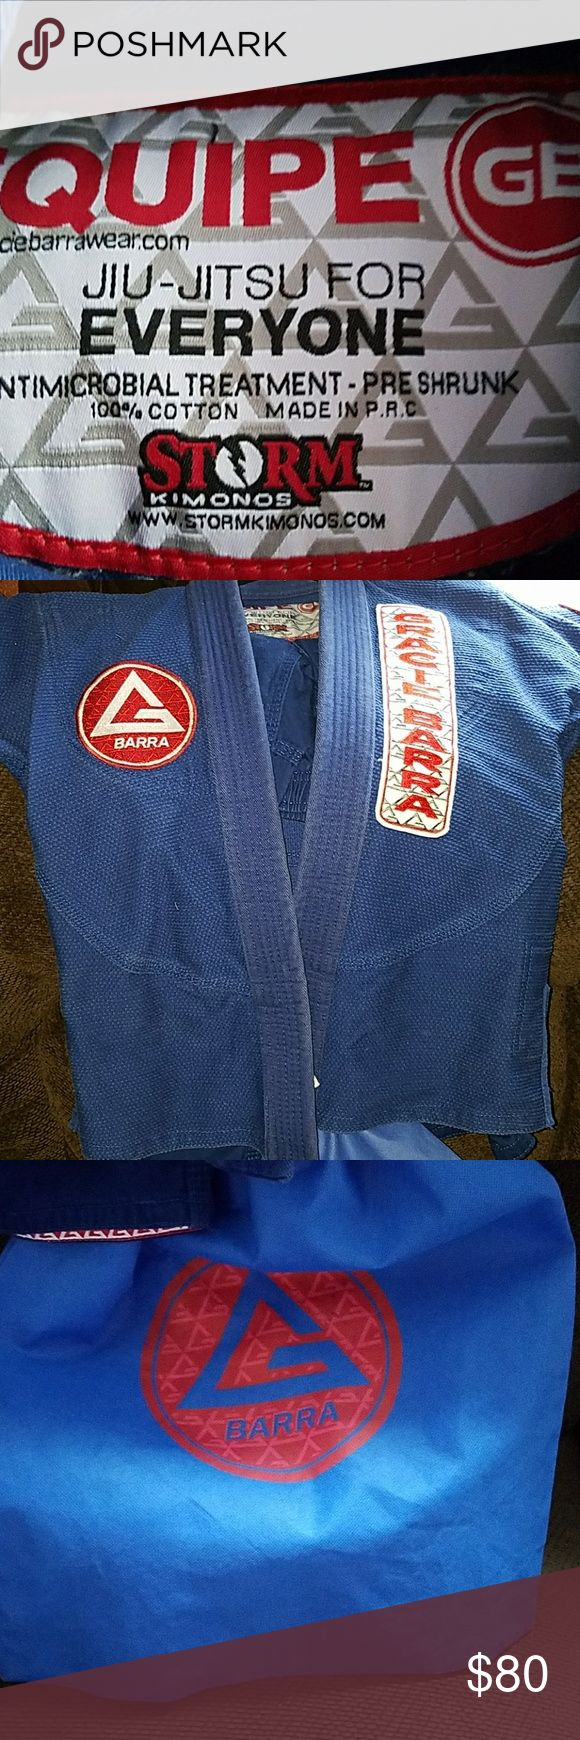 GRACIE BARRA GI Basically new only wore once and washed once this is a high quality professional gi EQUIPE Matching Sets